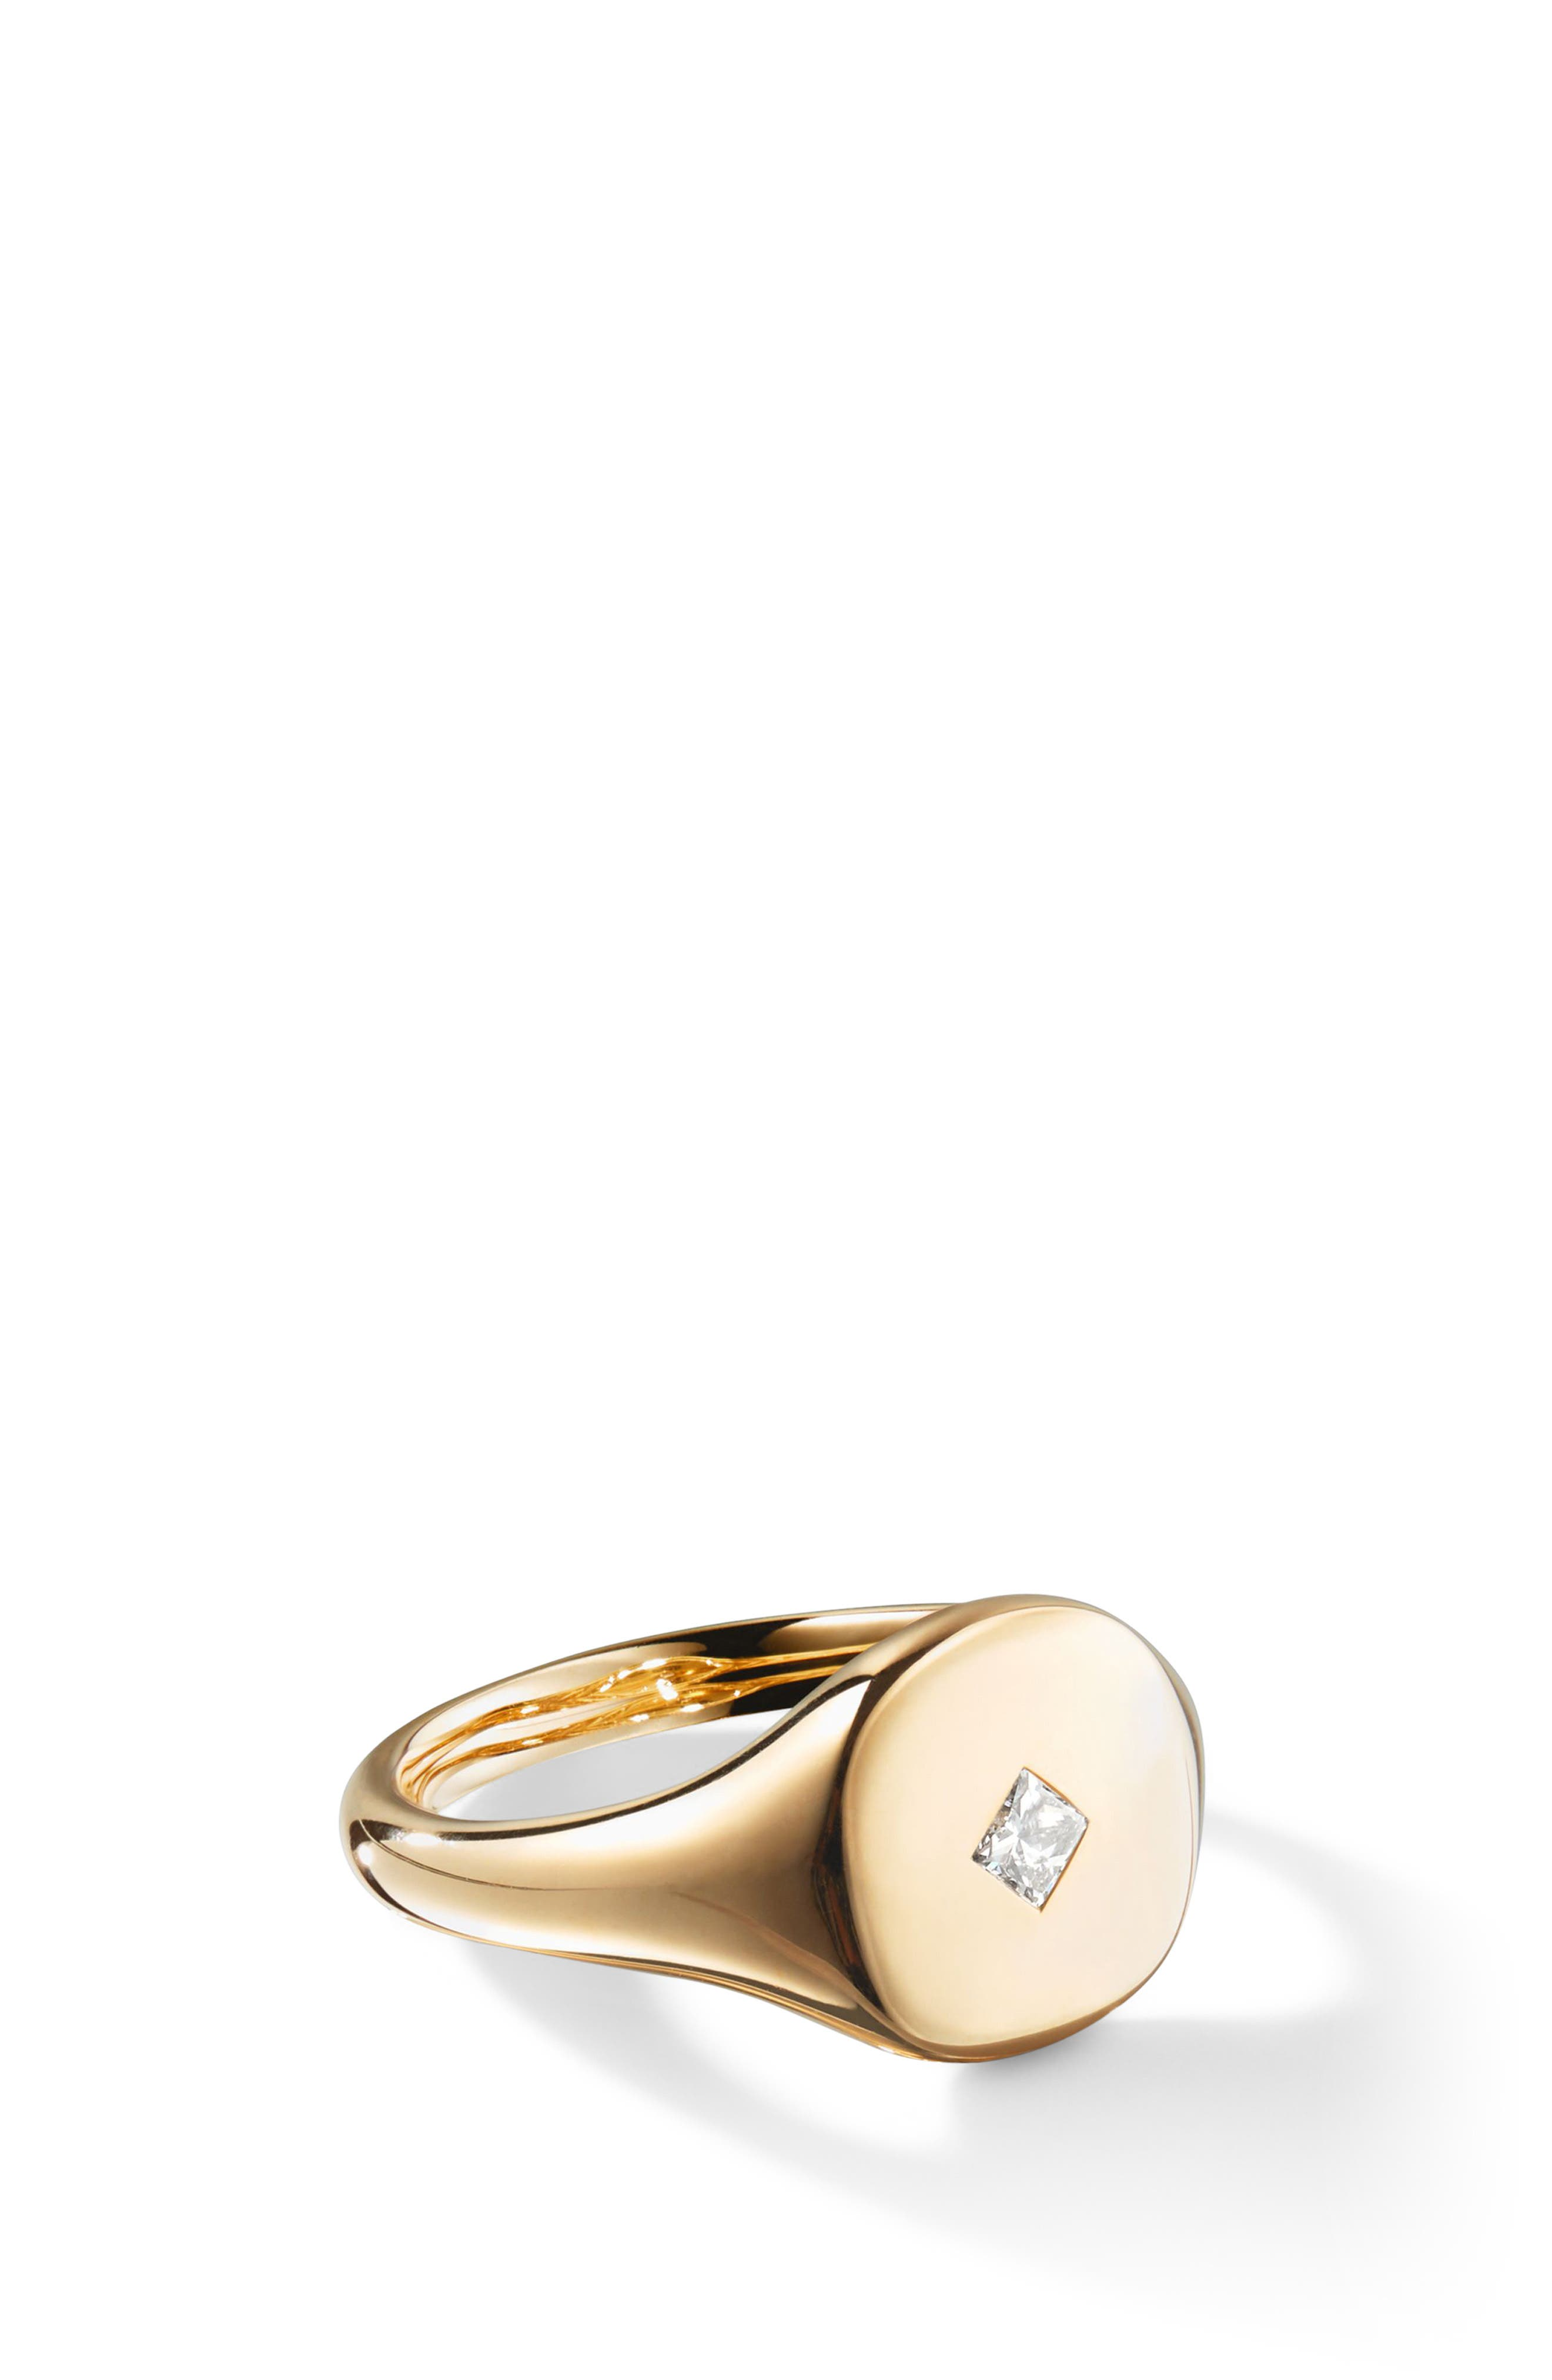 Cable Collectibles Mini Pinky Ring in 18K Gold with Princess Cut Diamond,                             Alternate thumbnail 2, color,                             GOLD/ DIAMOND